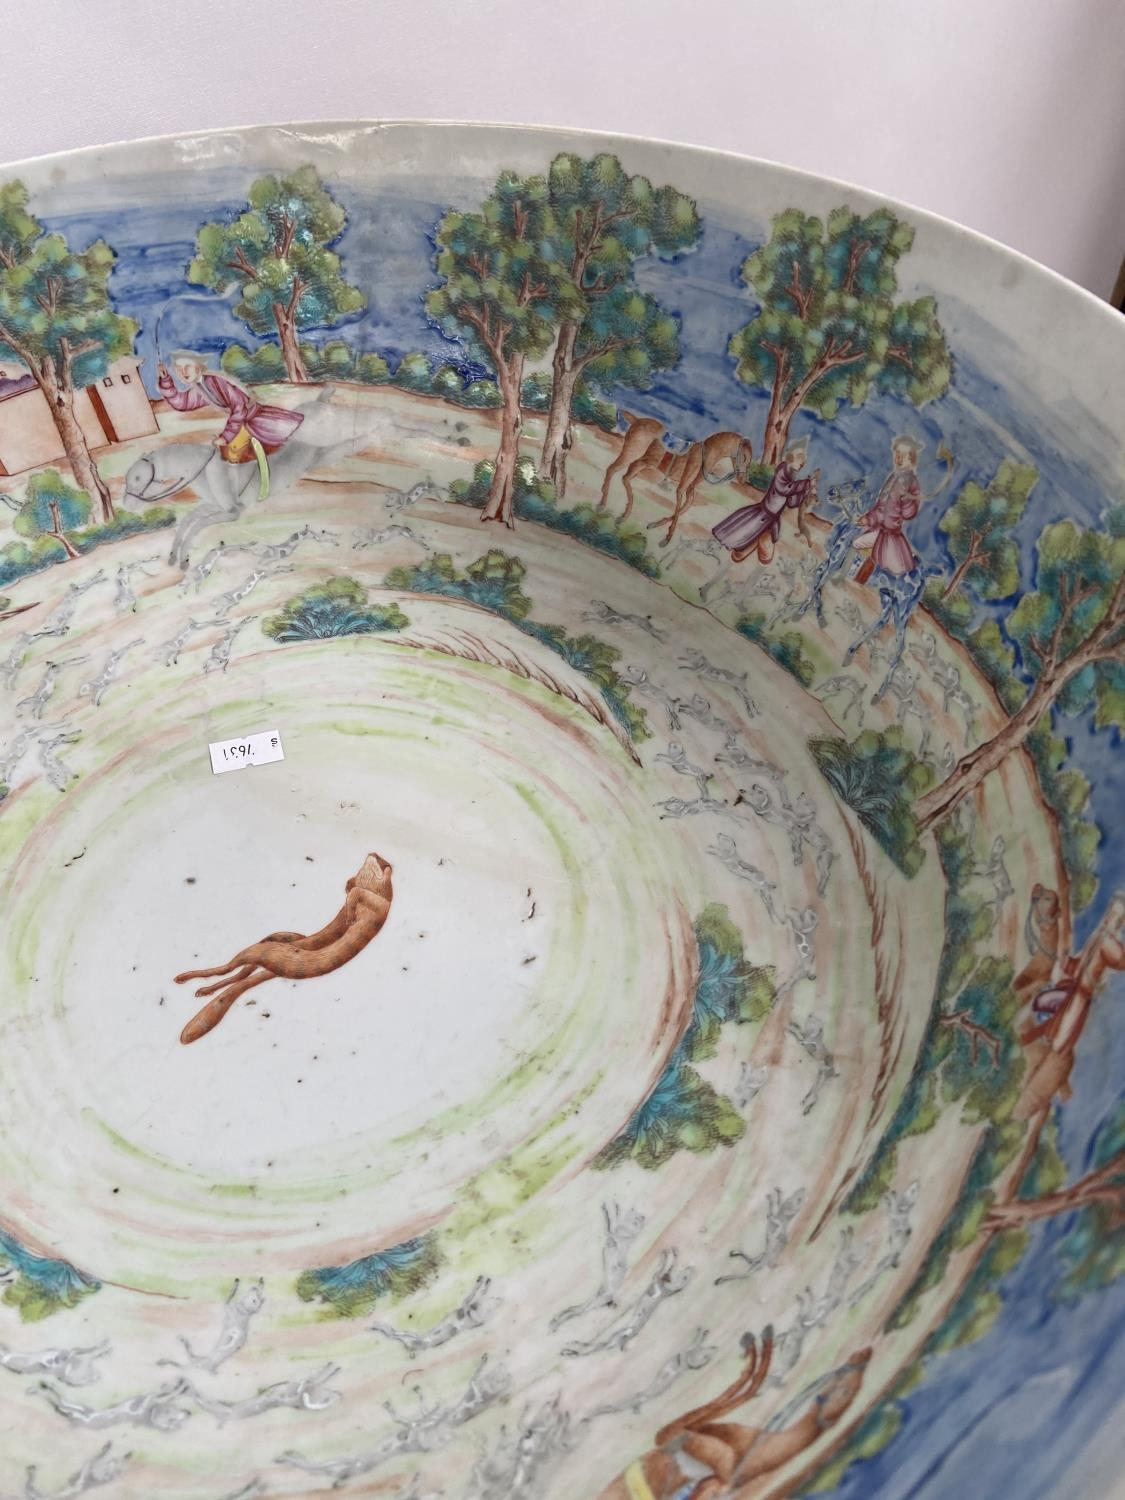 A LARGE 19TH CENTURY CHINESE HAND PAINTED BOWL. EXTERIOR DEPICTS CHINESE HUNTING SCENE PANELS. THE - Image 10 of 39